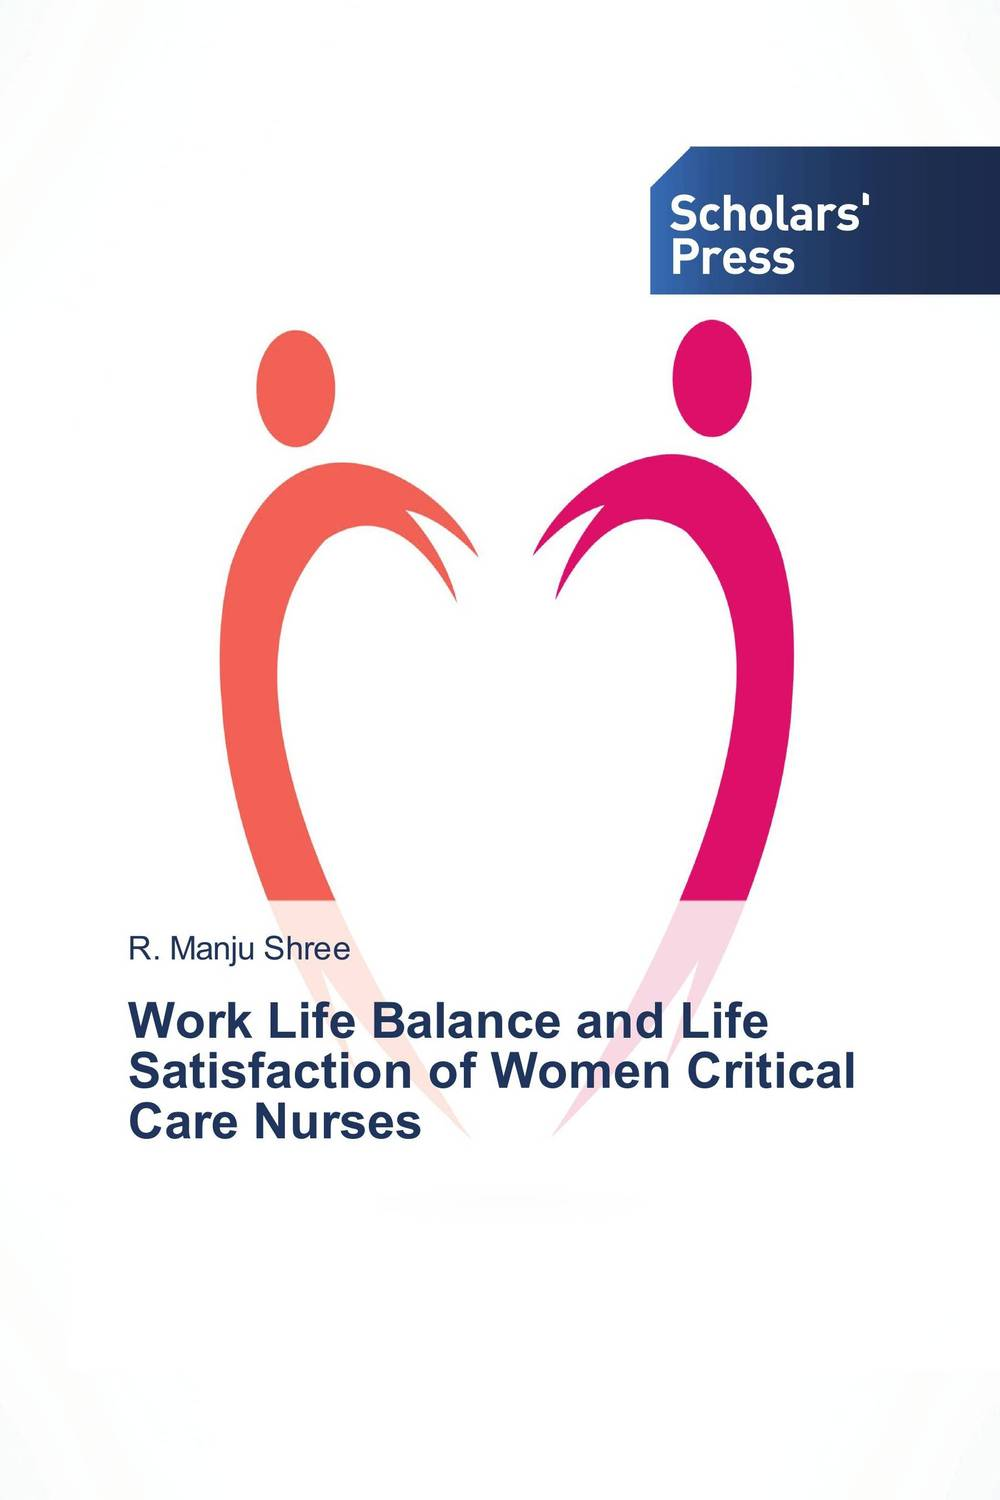 Work Life Balance and Life Satisfaction of Women Critical Care Nurses